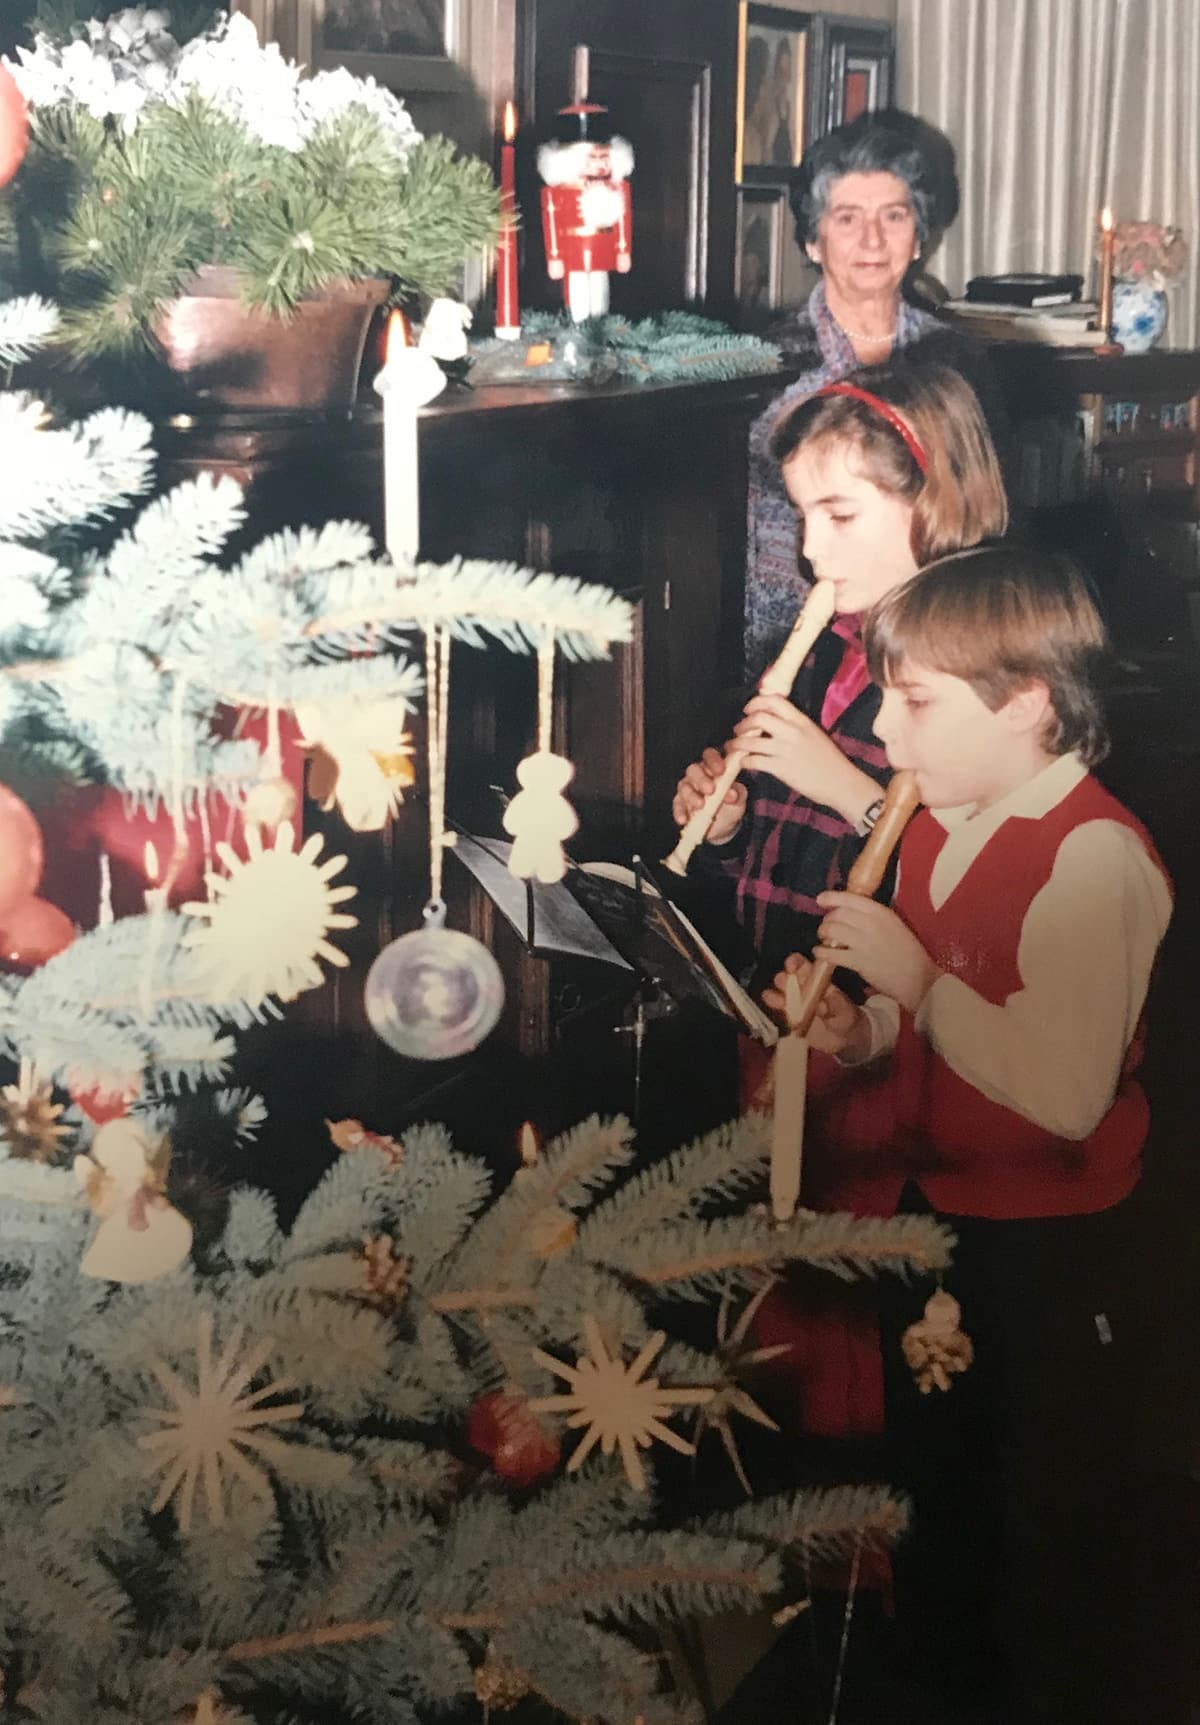 old Christmas photo from 1985